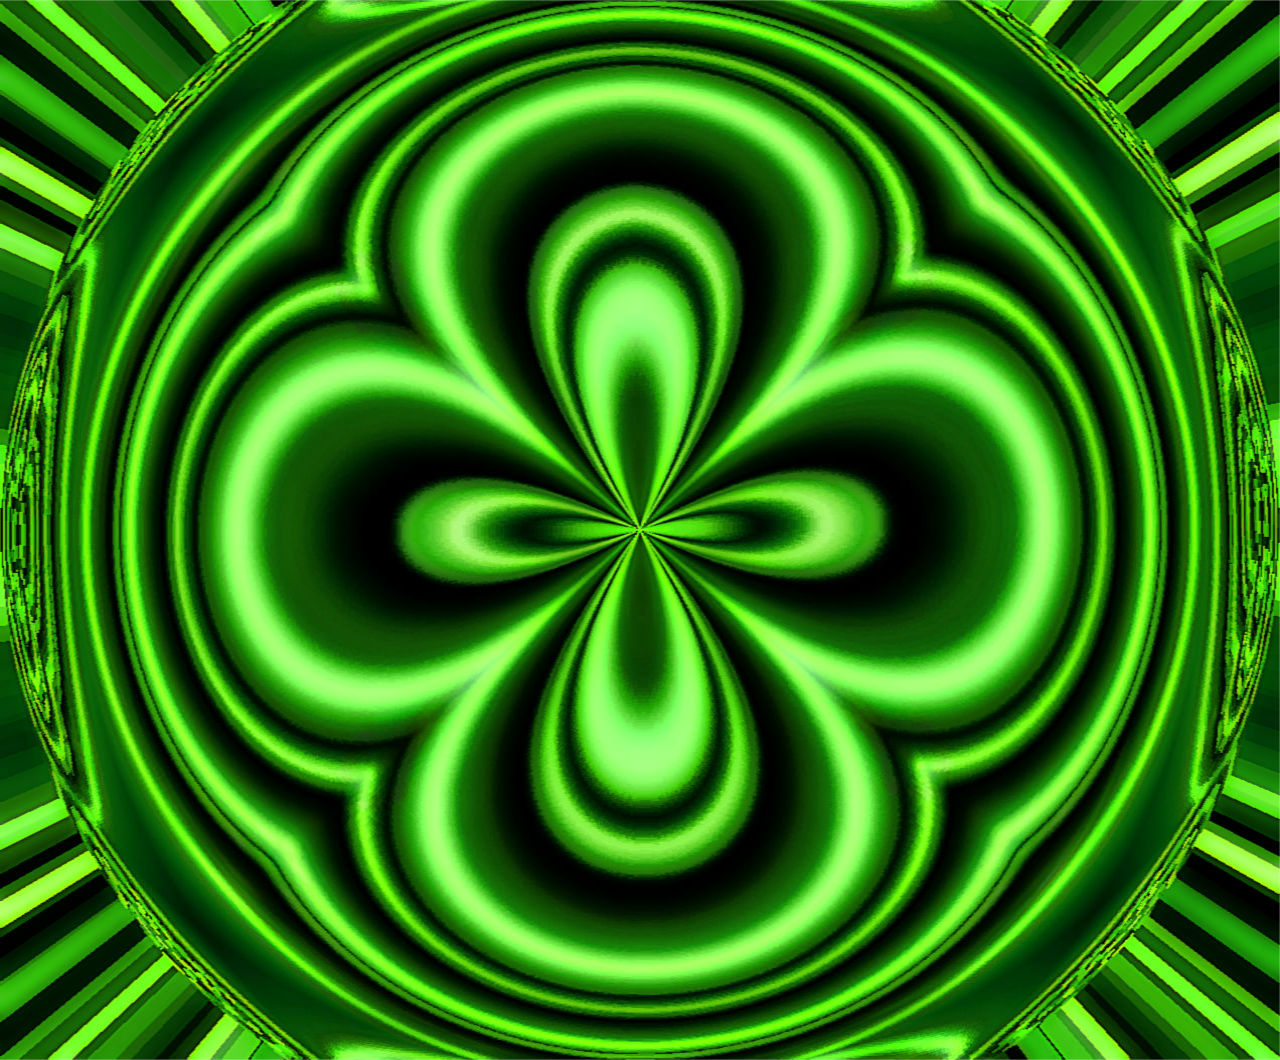 Four Leaf Clover Computer Wallpapers Desktop Backgrounds 1280x1060